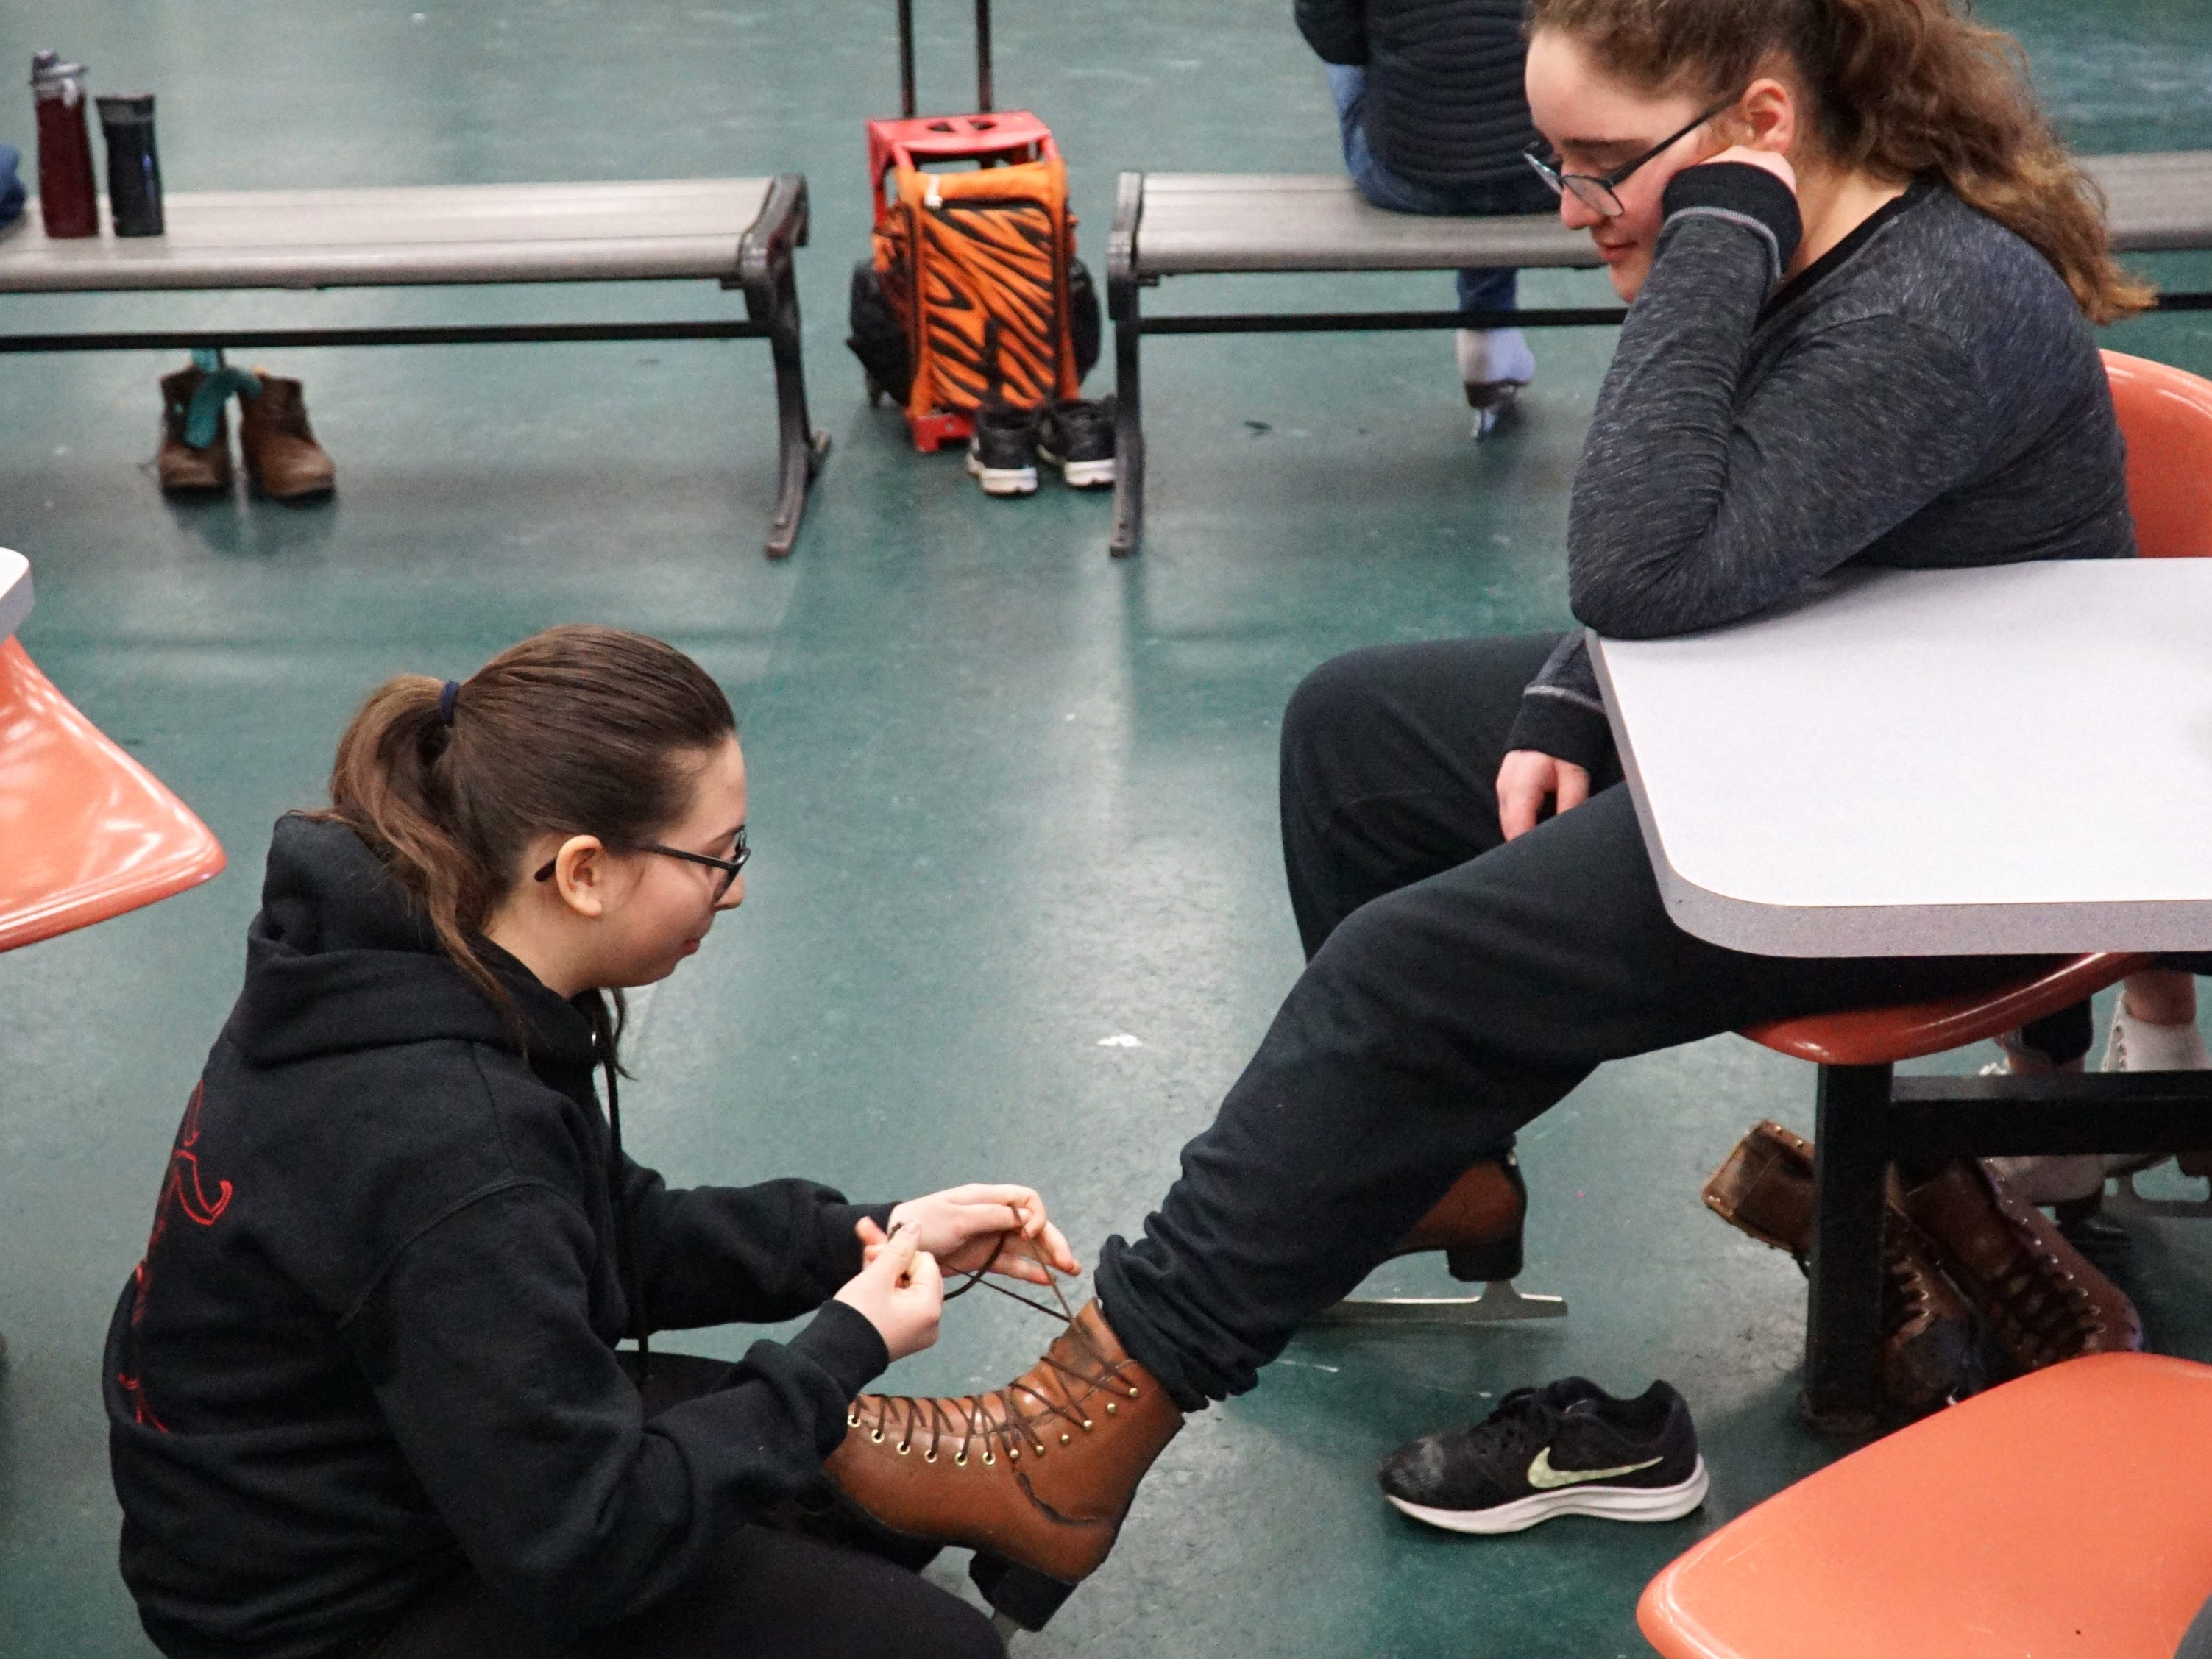 Sasha Feller, 12, laces up the skates of friend Abbie Gelfund, 12, at the Feb. 22 Open Skate at the Birmingham Ice Arena. The arena has three open skates Weds-Fri from 1:10 to 2:30 with skates available for rental. The arena is located at 2300 E. Lincoln in Birmingham. For more information on availability of the ice, call 248-530-1640.